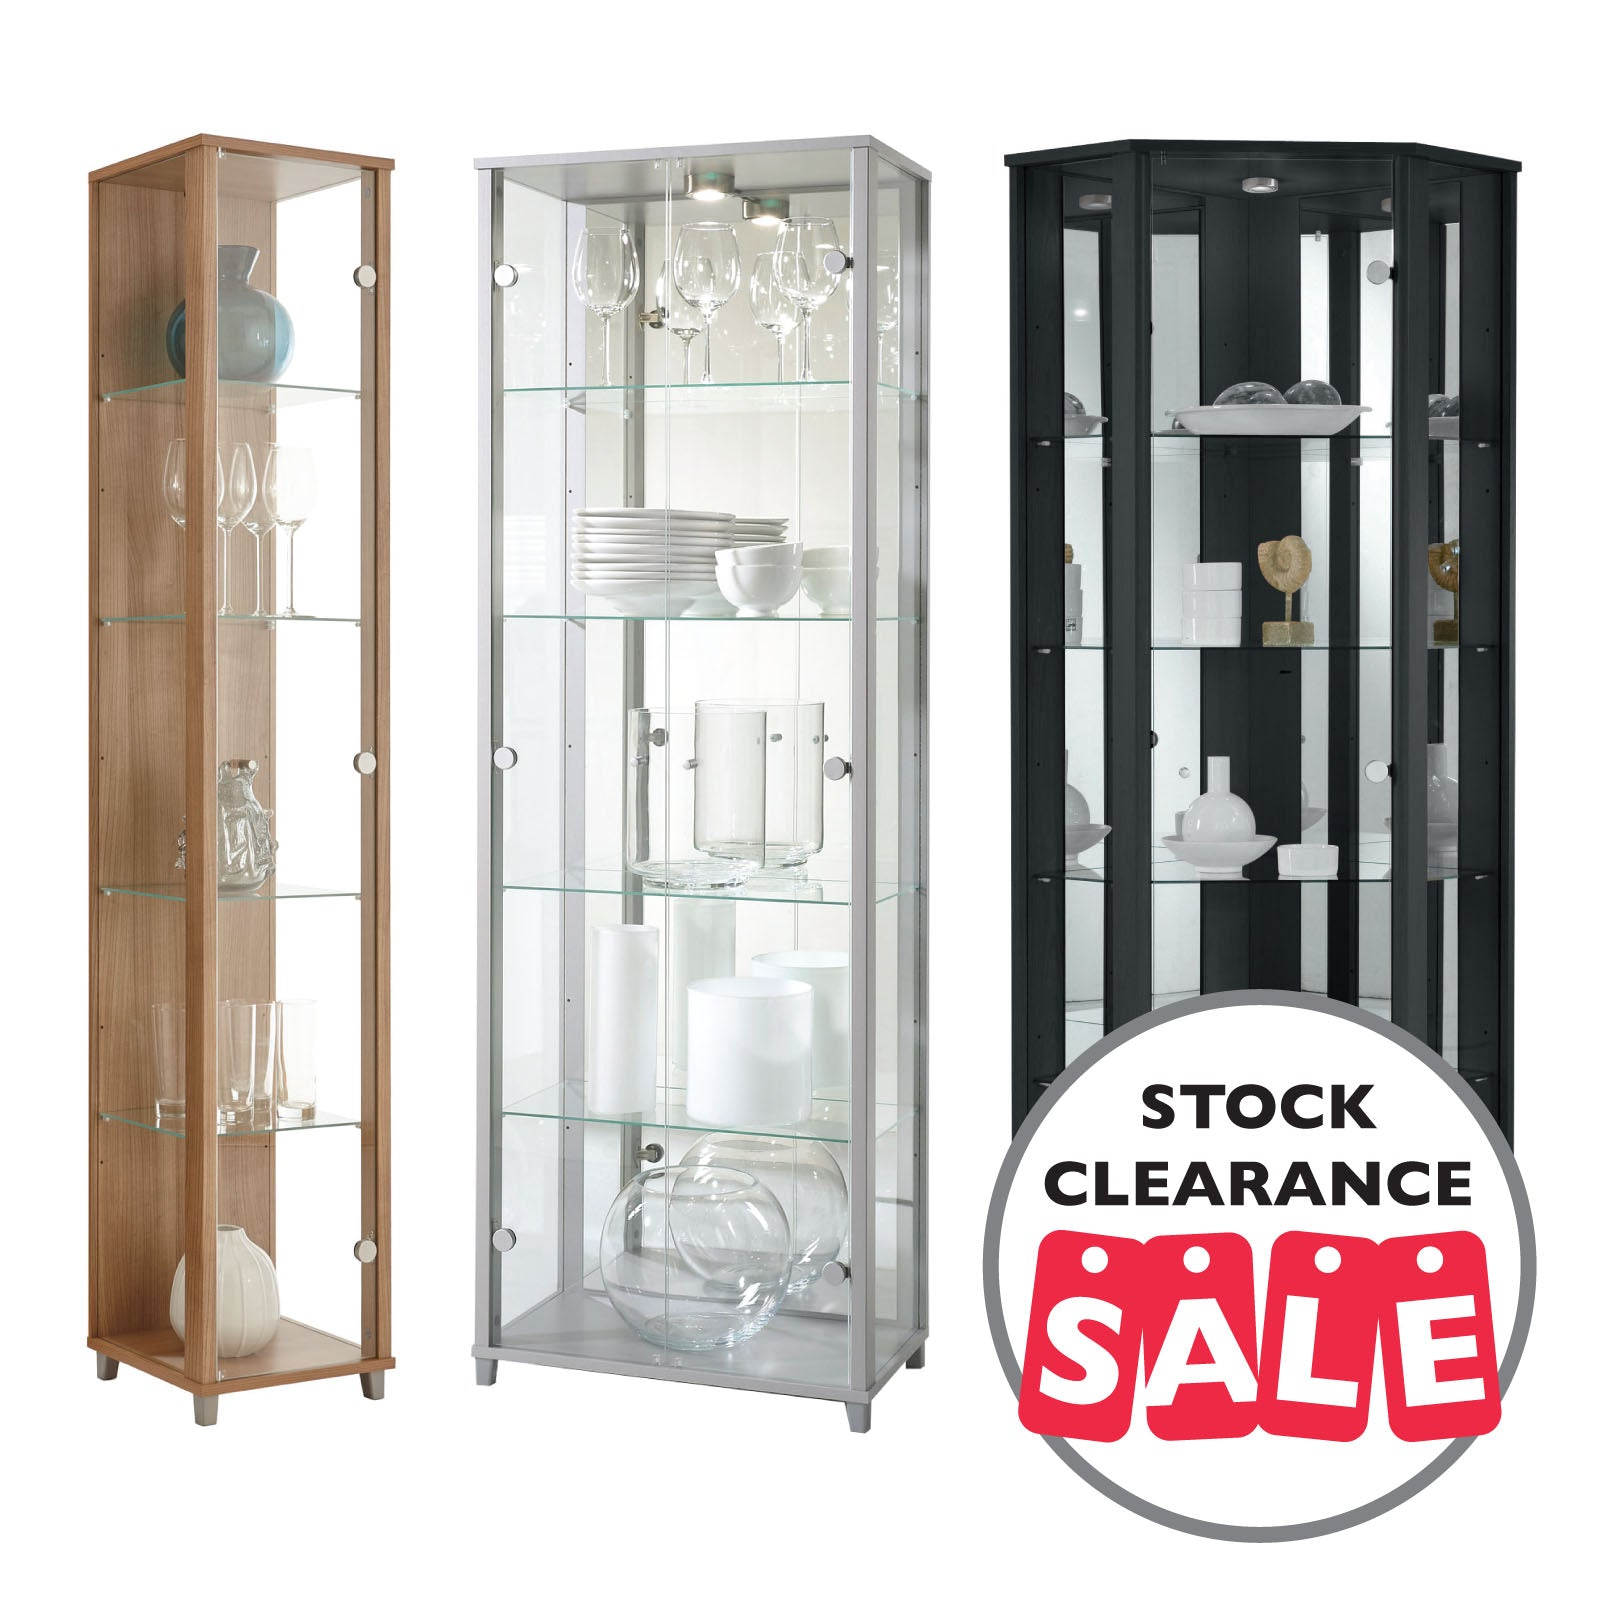 de8f346d031 Reduced to Clear Glass Display Cabinets Sale Low Price – Display ...